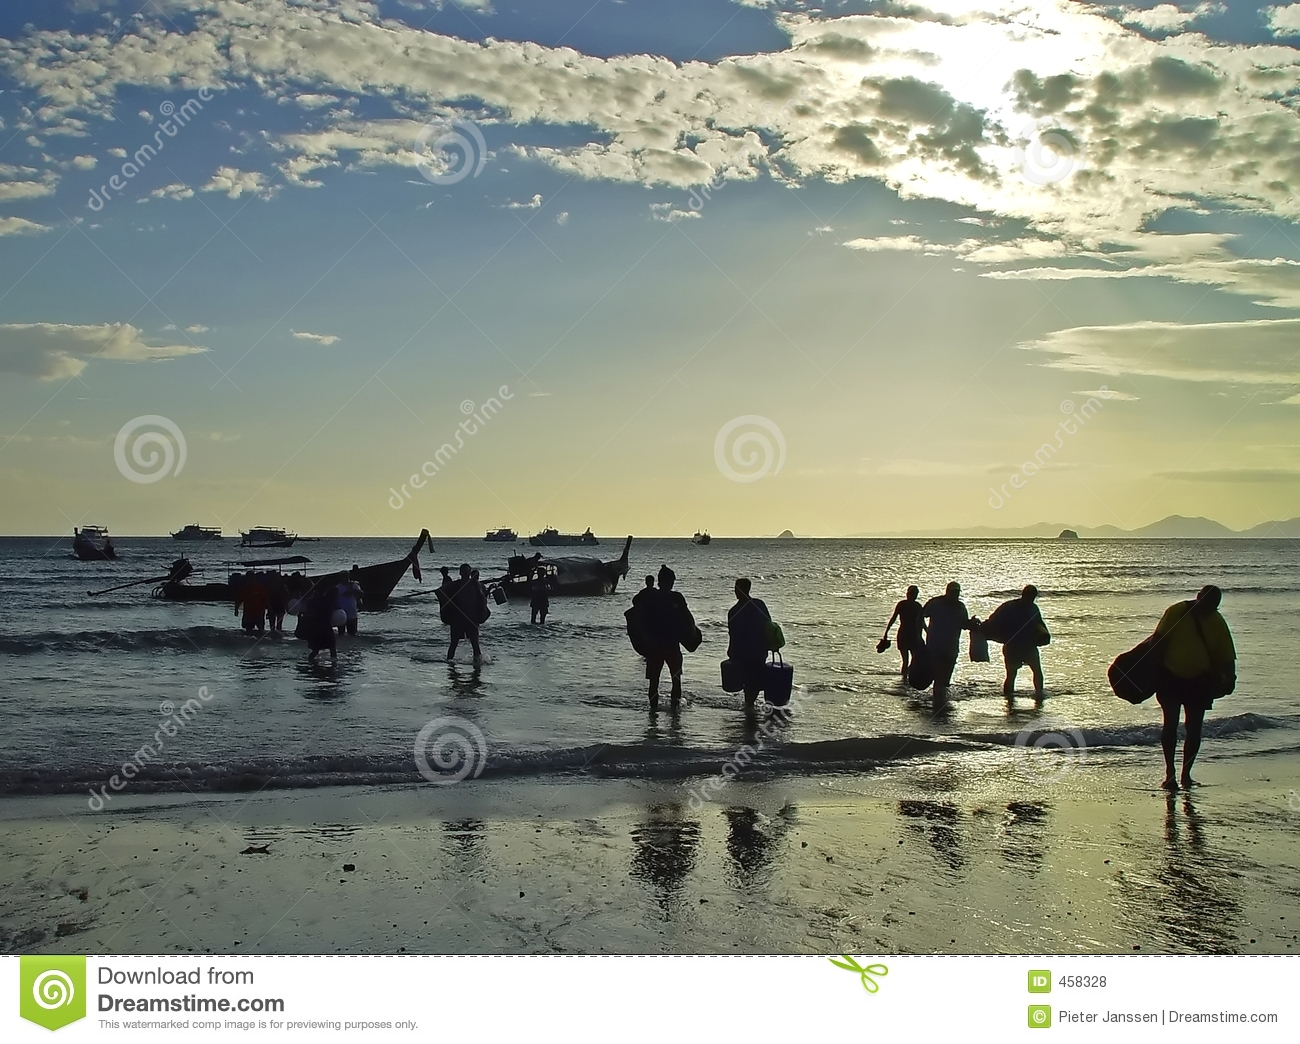 Download Diving in Thailand stock photo. Image of seaside, shoreline - 458328